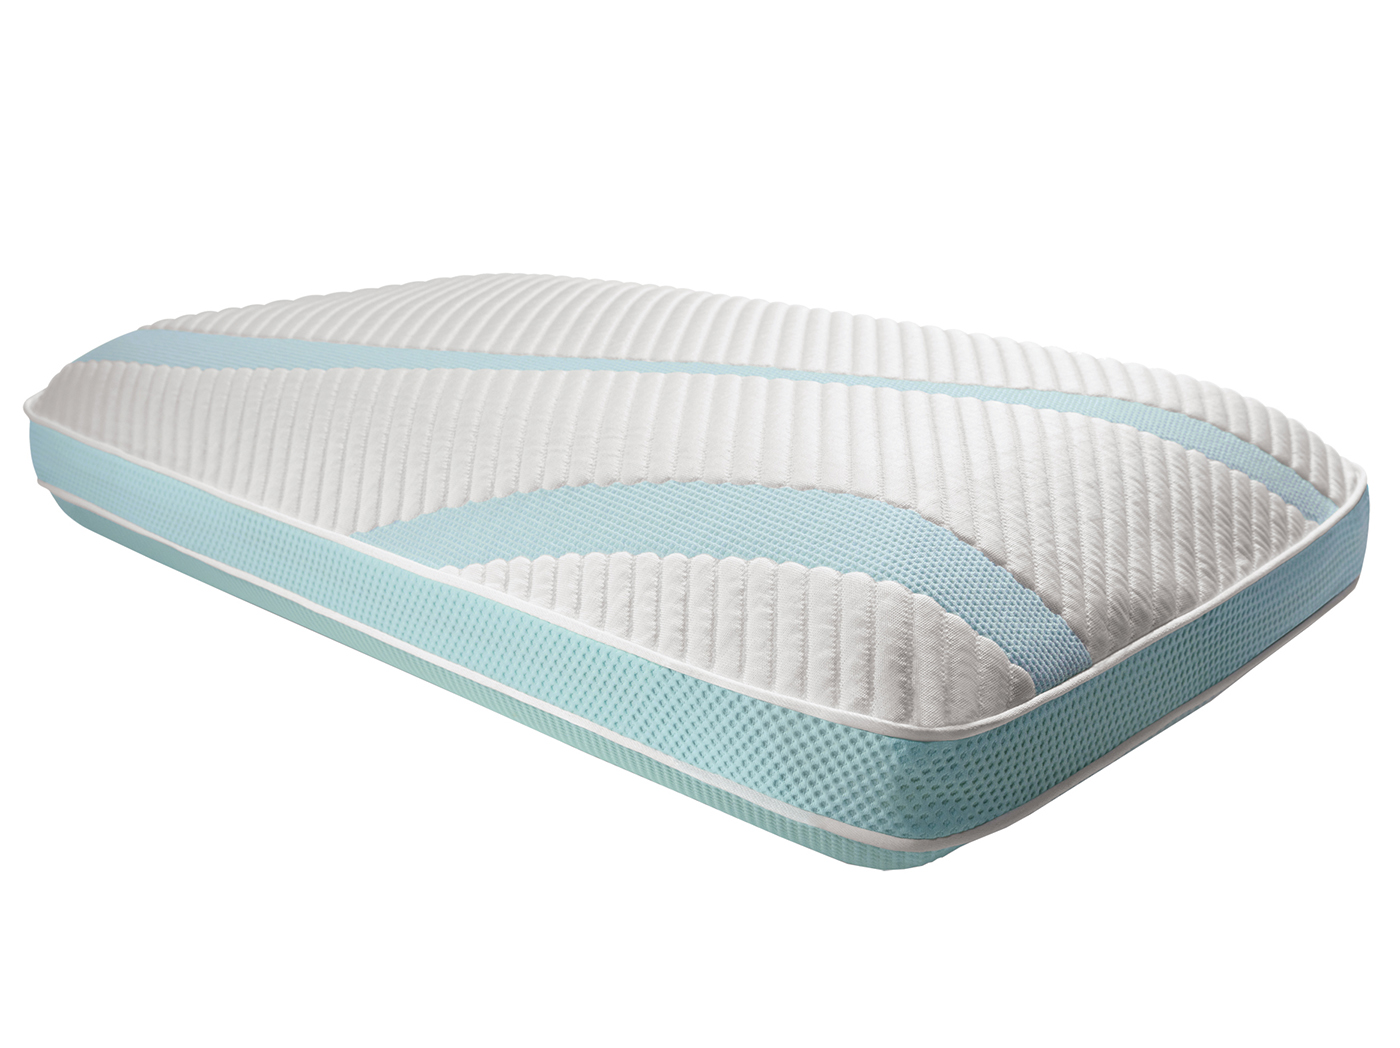 Tempur-Adapt Pro Hi Cooling Queen Pillow